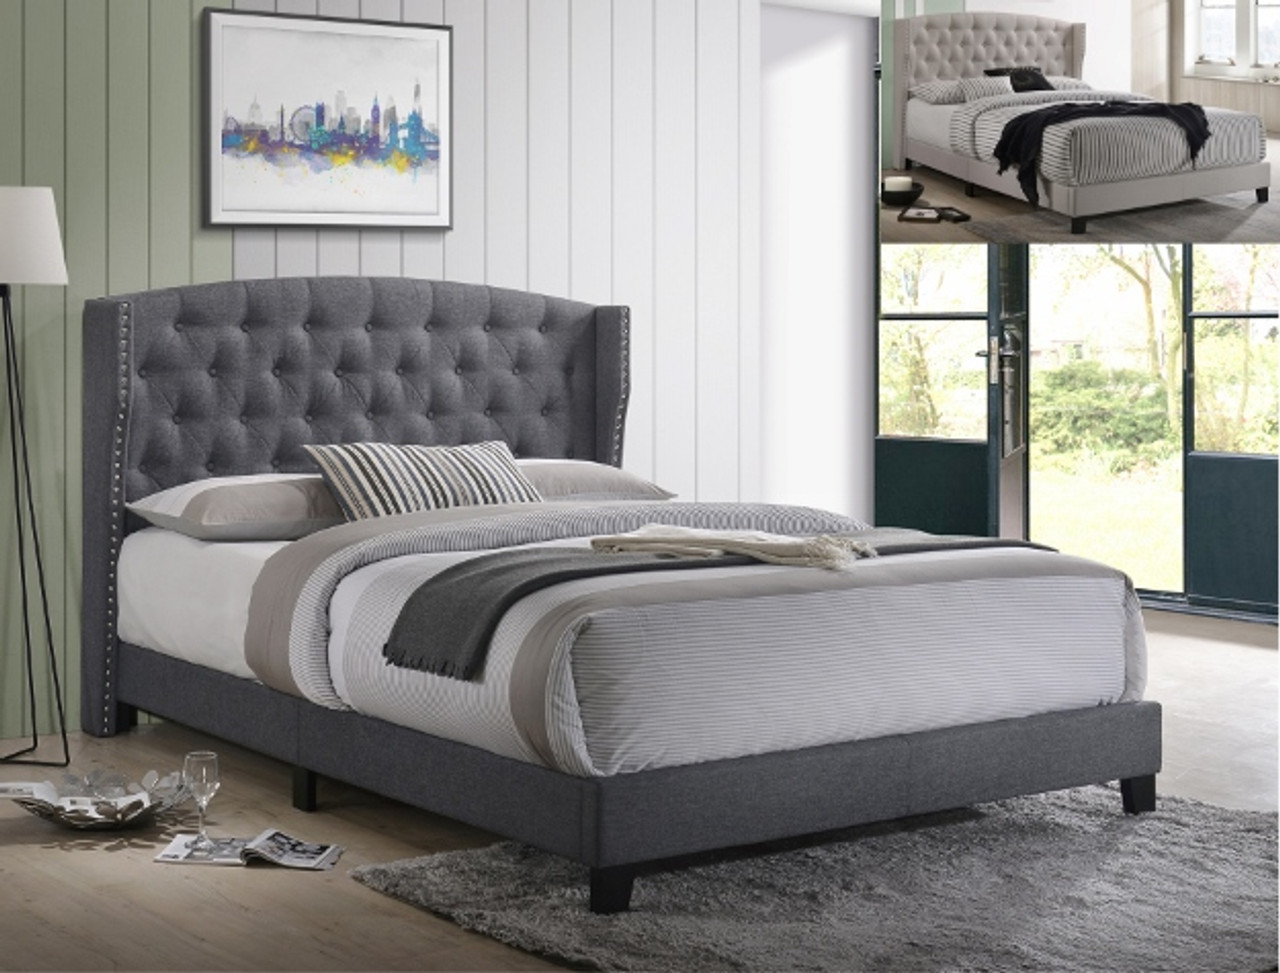 Picture of: Rosemary Cal King Platform Bed Grey Finish On Sale At Montana S Home Furniture Serving Houston Tx